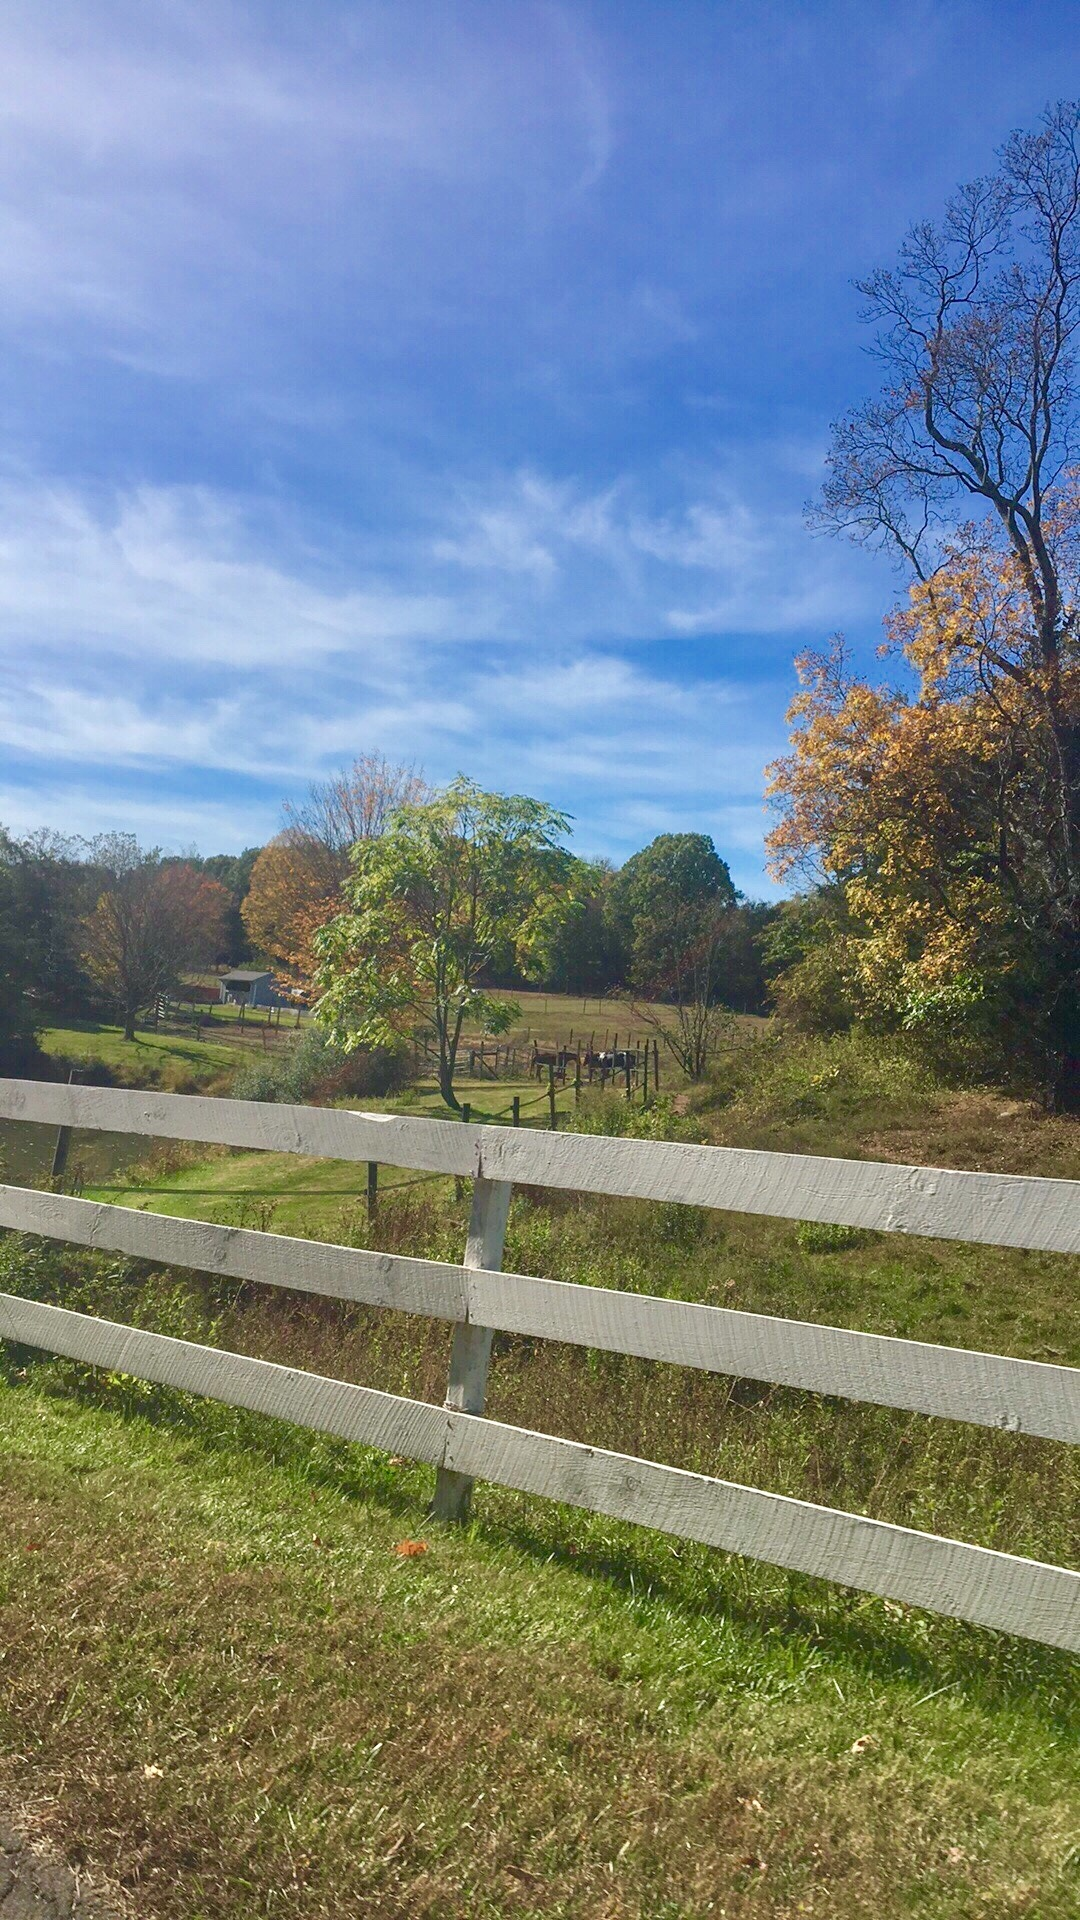 Autumn in Connecticut  by DonnaFuller